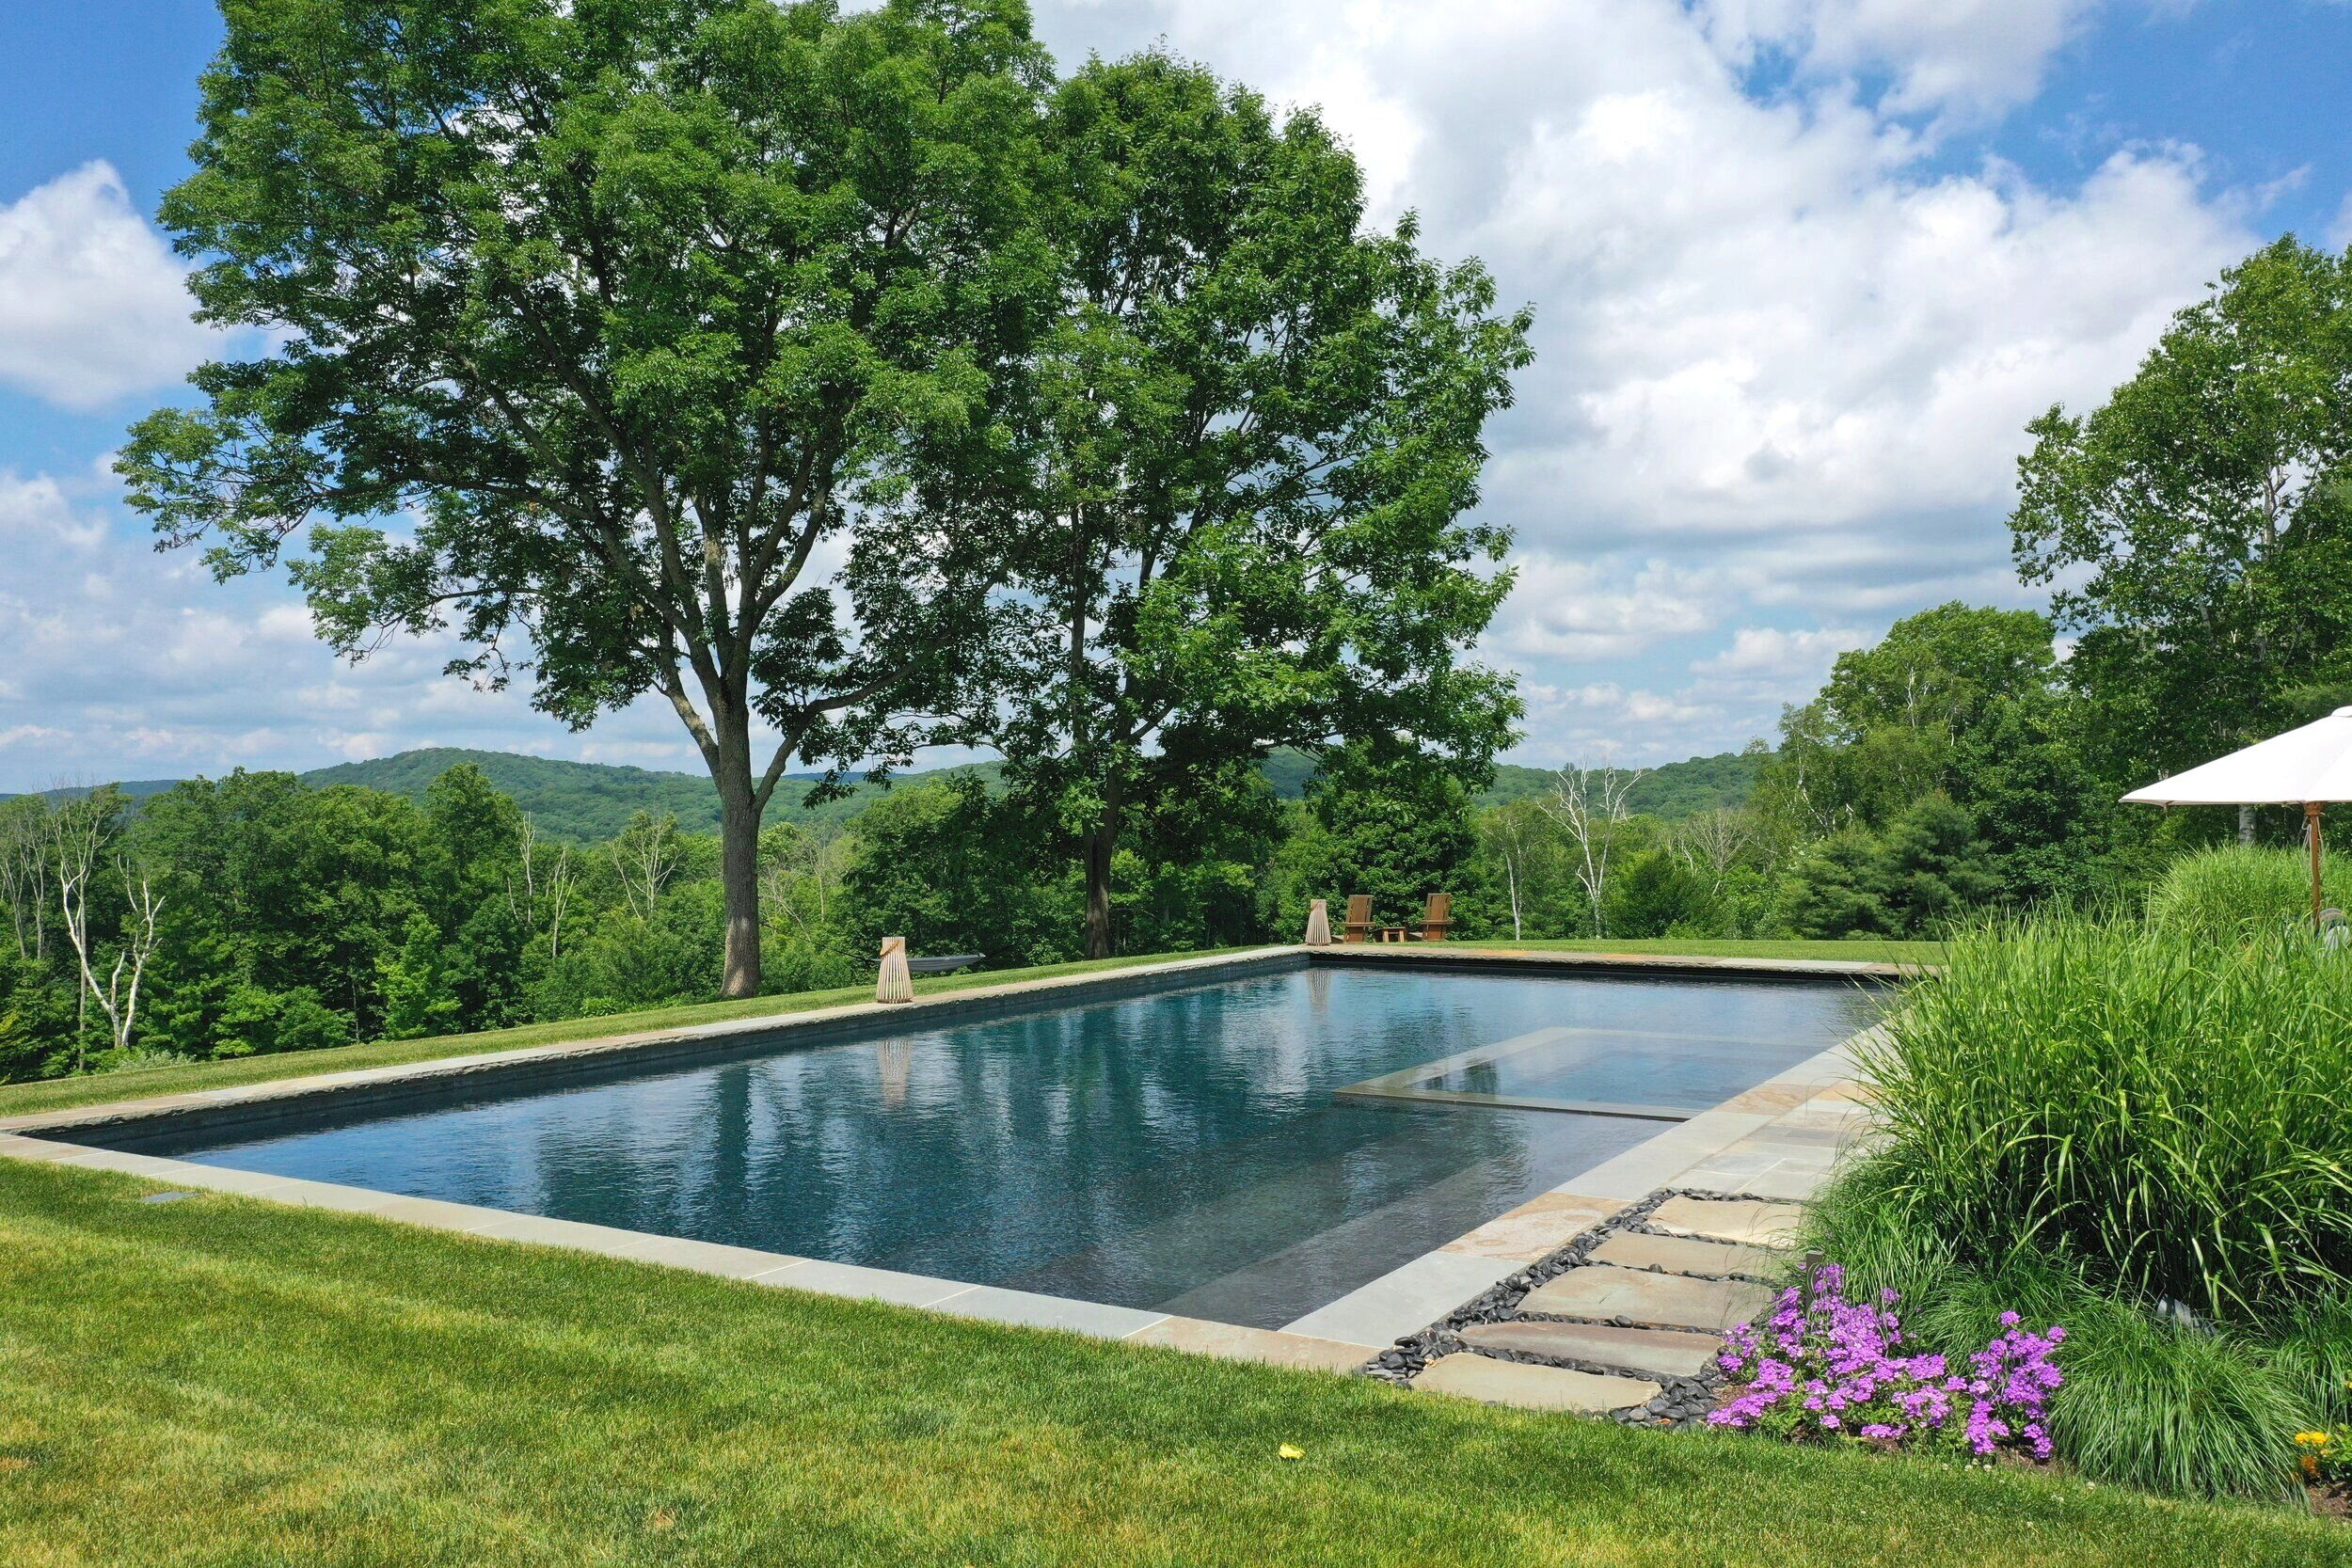 COUNTRY — DRAKELEY POOL COMPANY